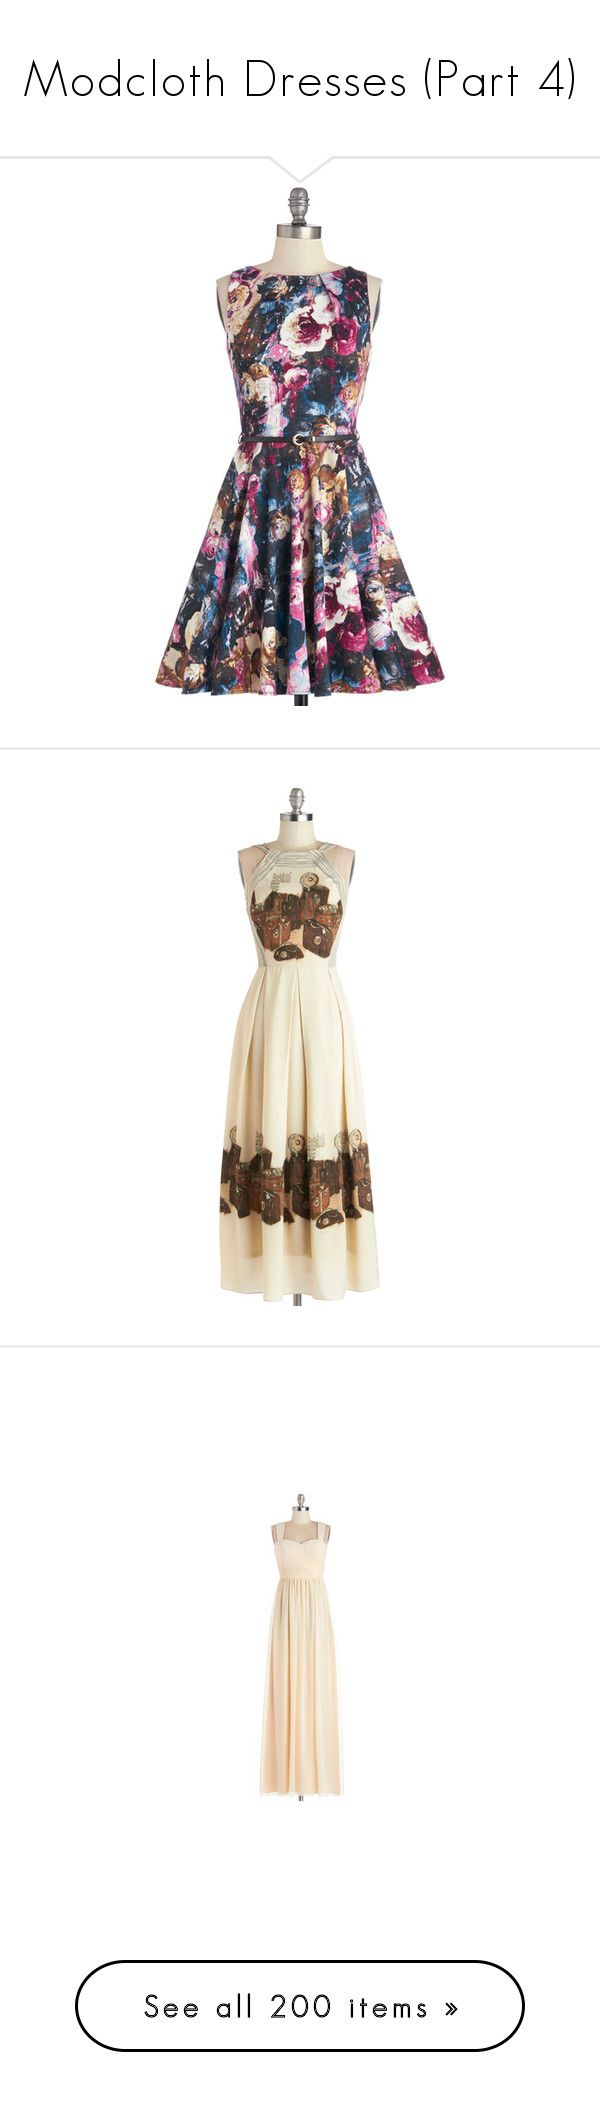 """""""Modcloth Dresses (Part 4)"""" by fashions-of-my-stories ❤ liked on Polyvore featuring dresses, apparel, classic dress, multi, going out dresses, multi colored dress, multi color dress, pocket dress, party dresses and modcloth"""